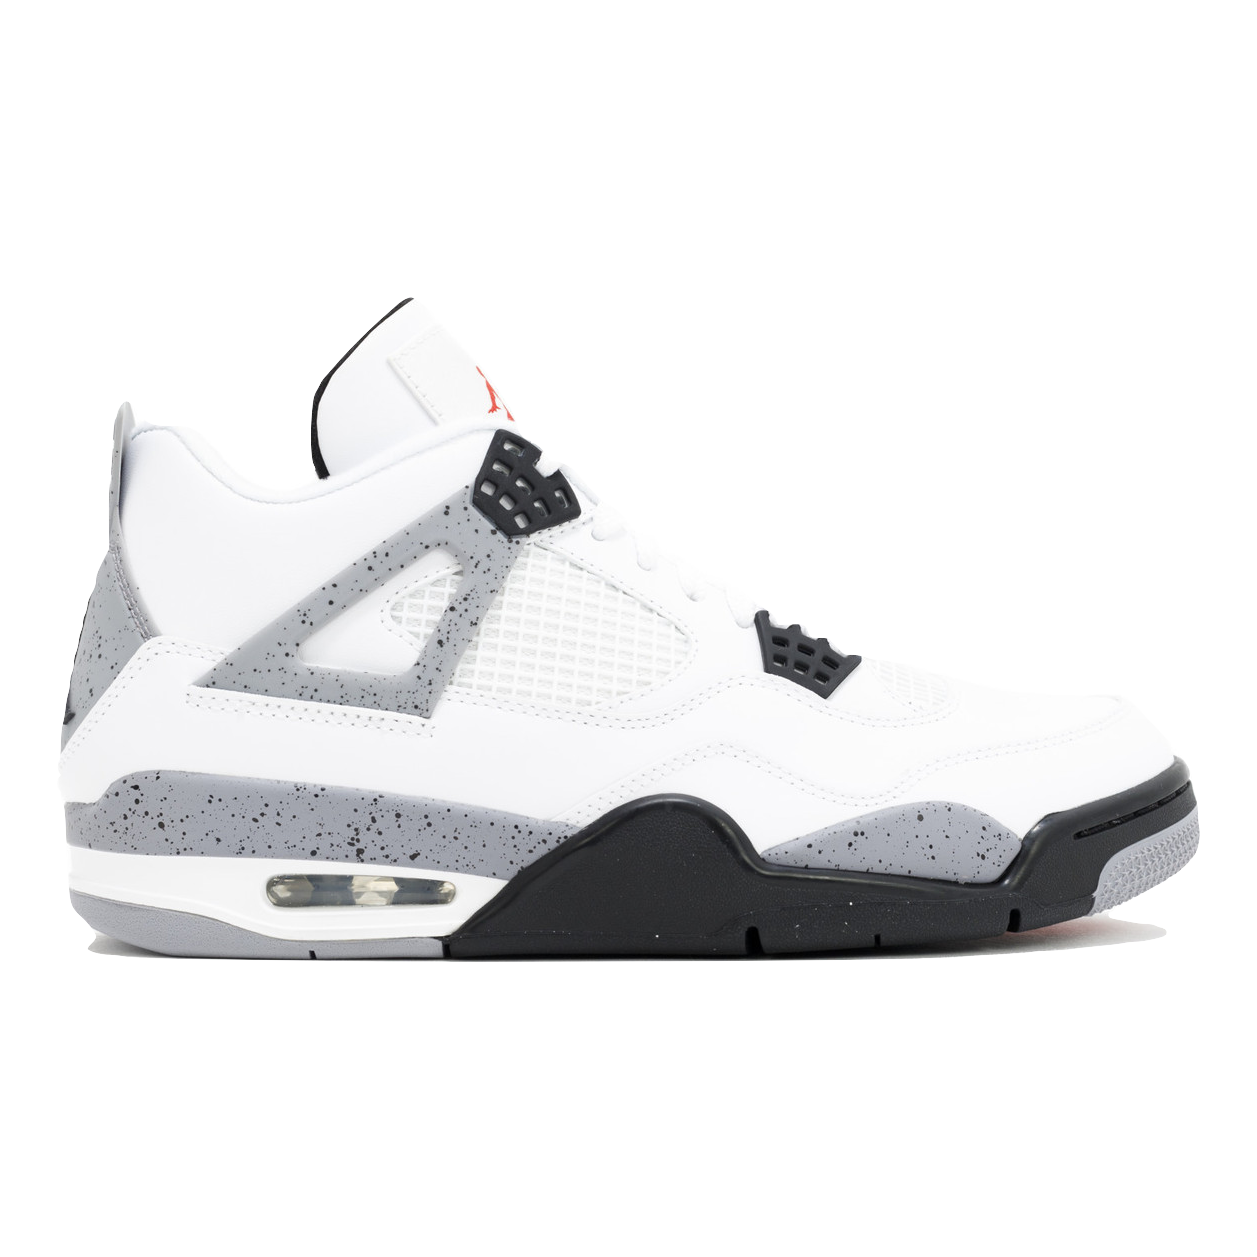 Air Jordan 4 Retro - White Cement (2012)